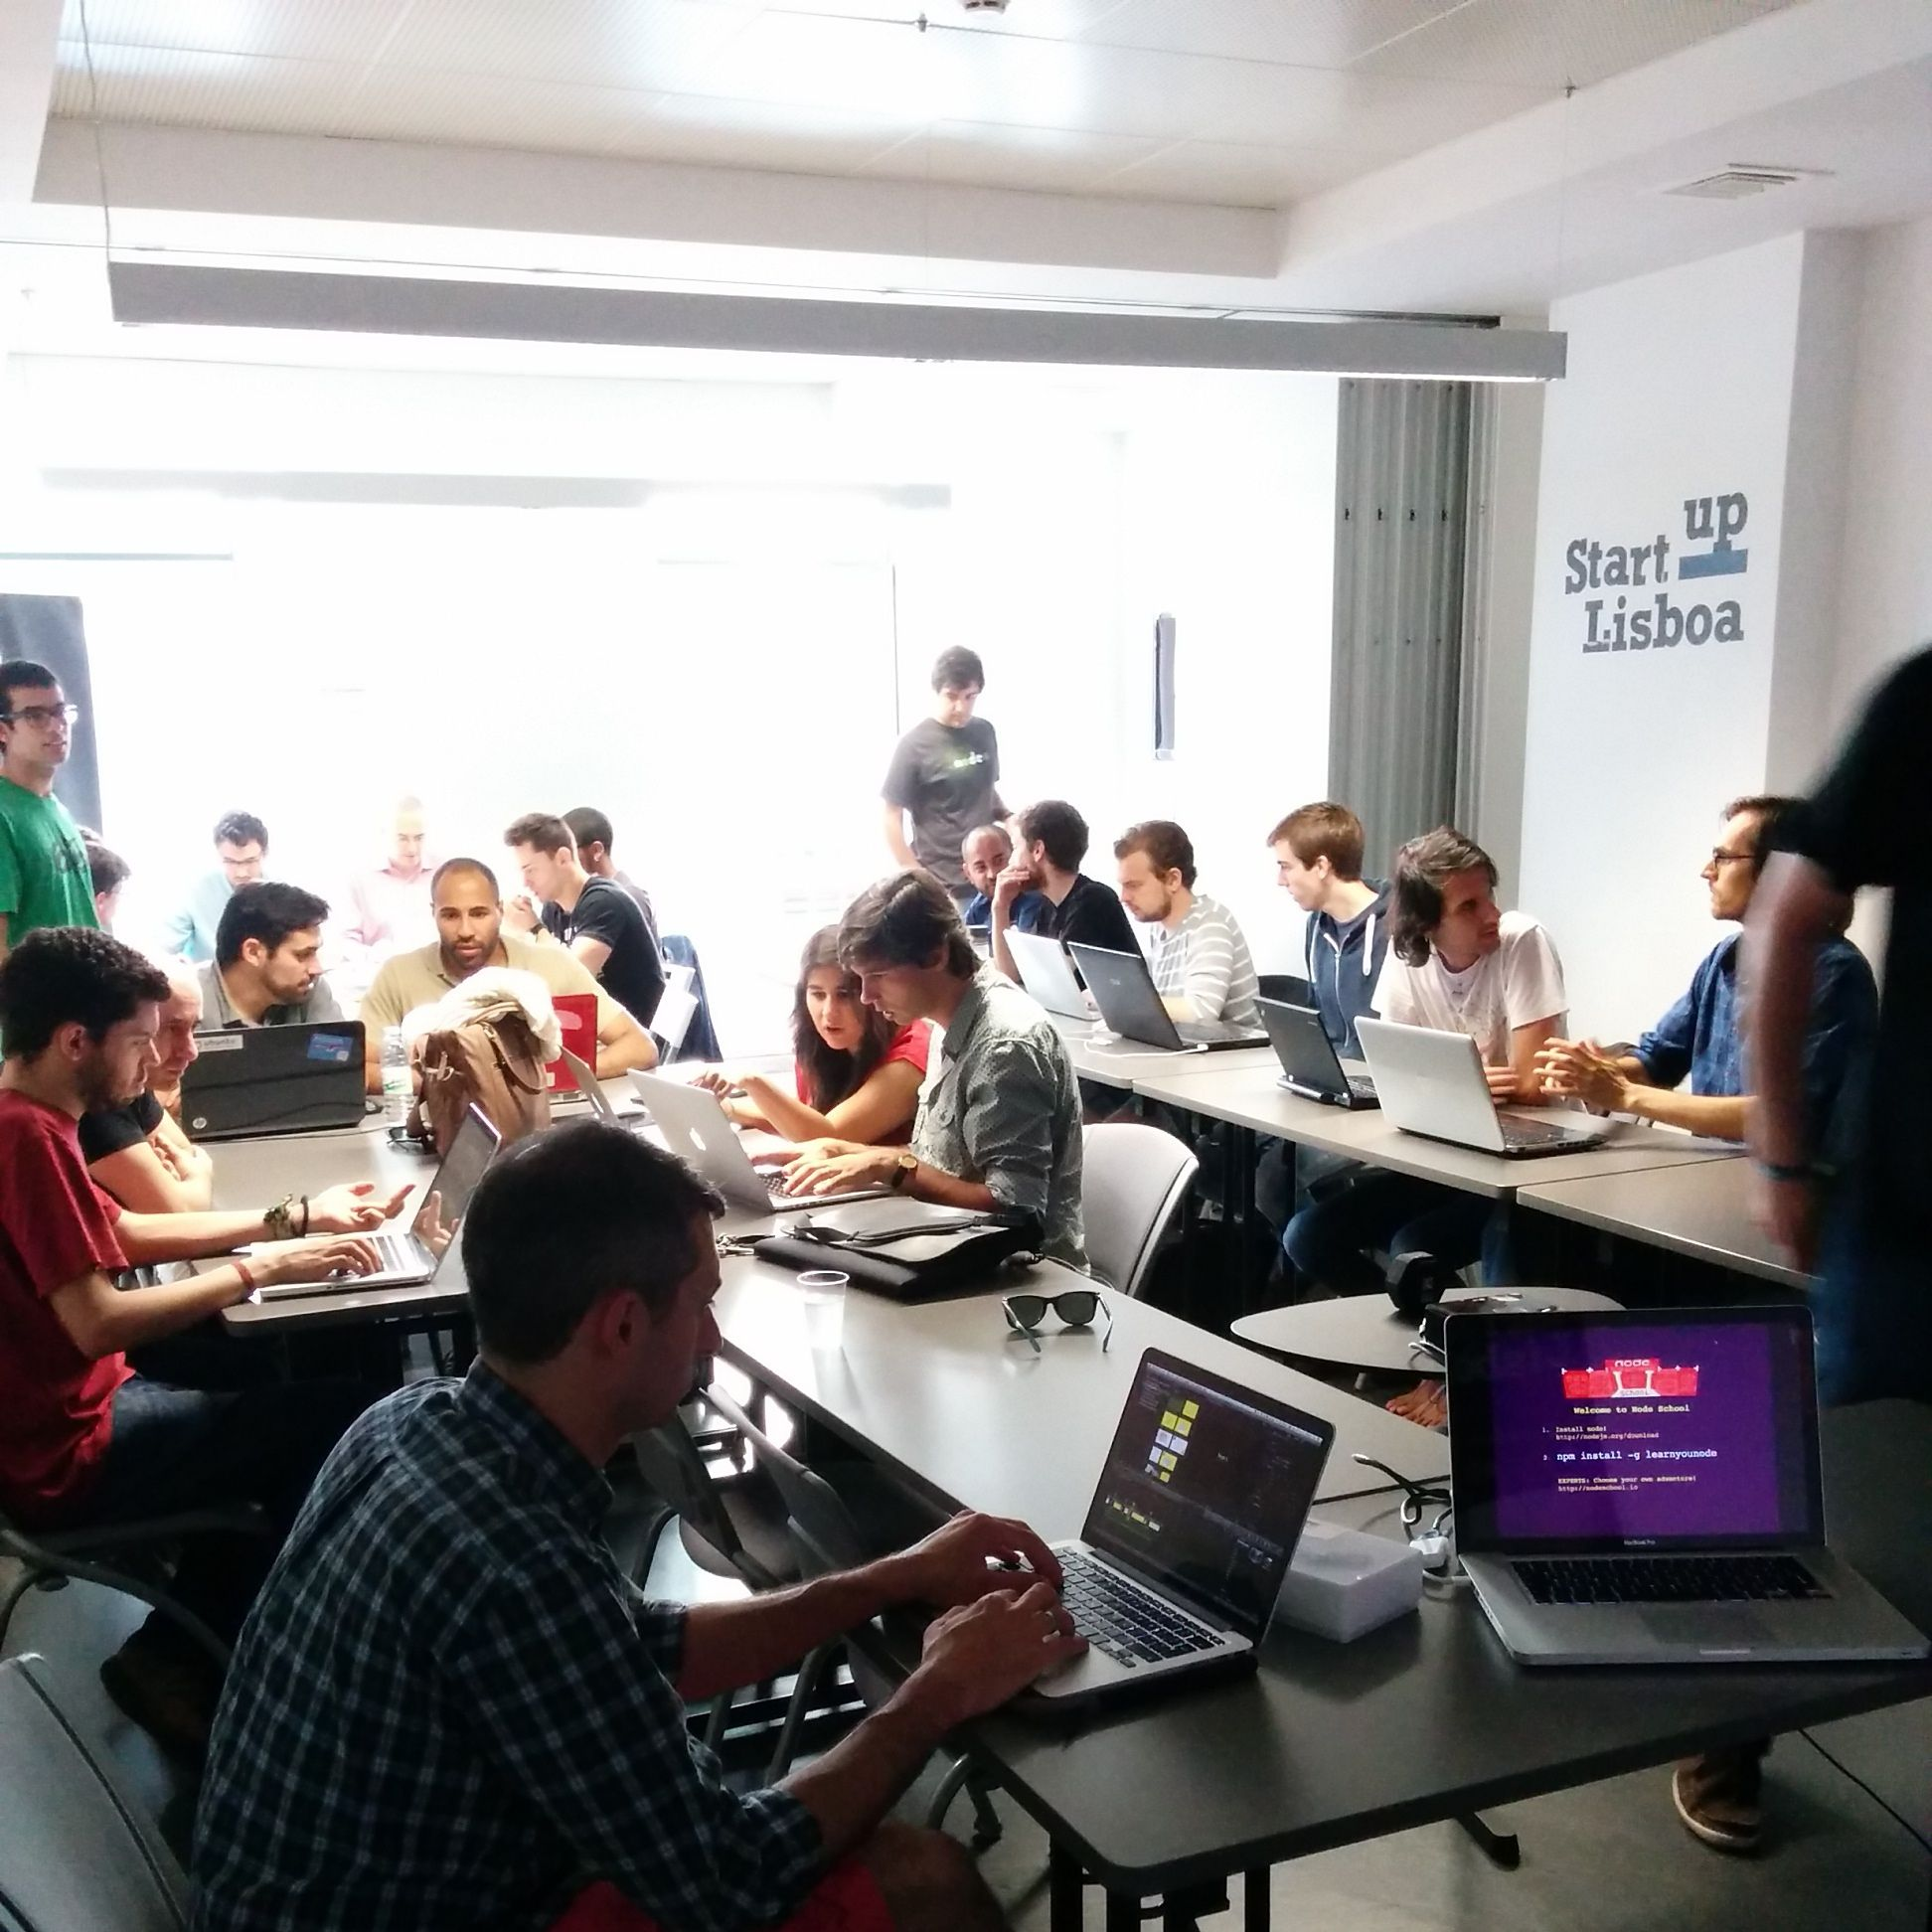 require('lx') - The JavaScript meetup in Lisbon